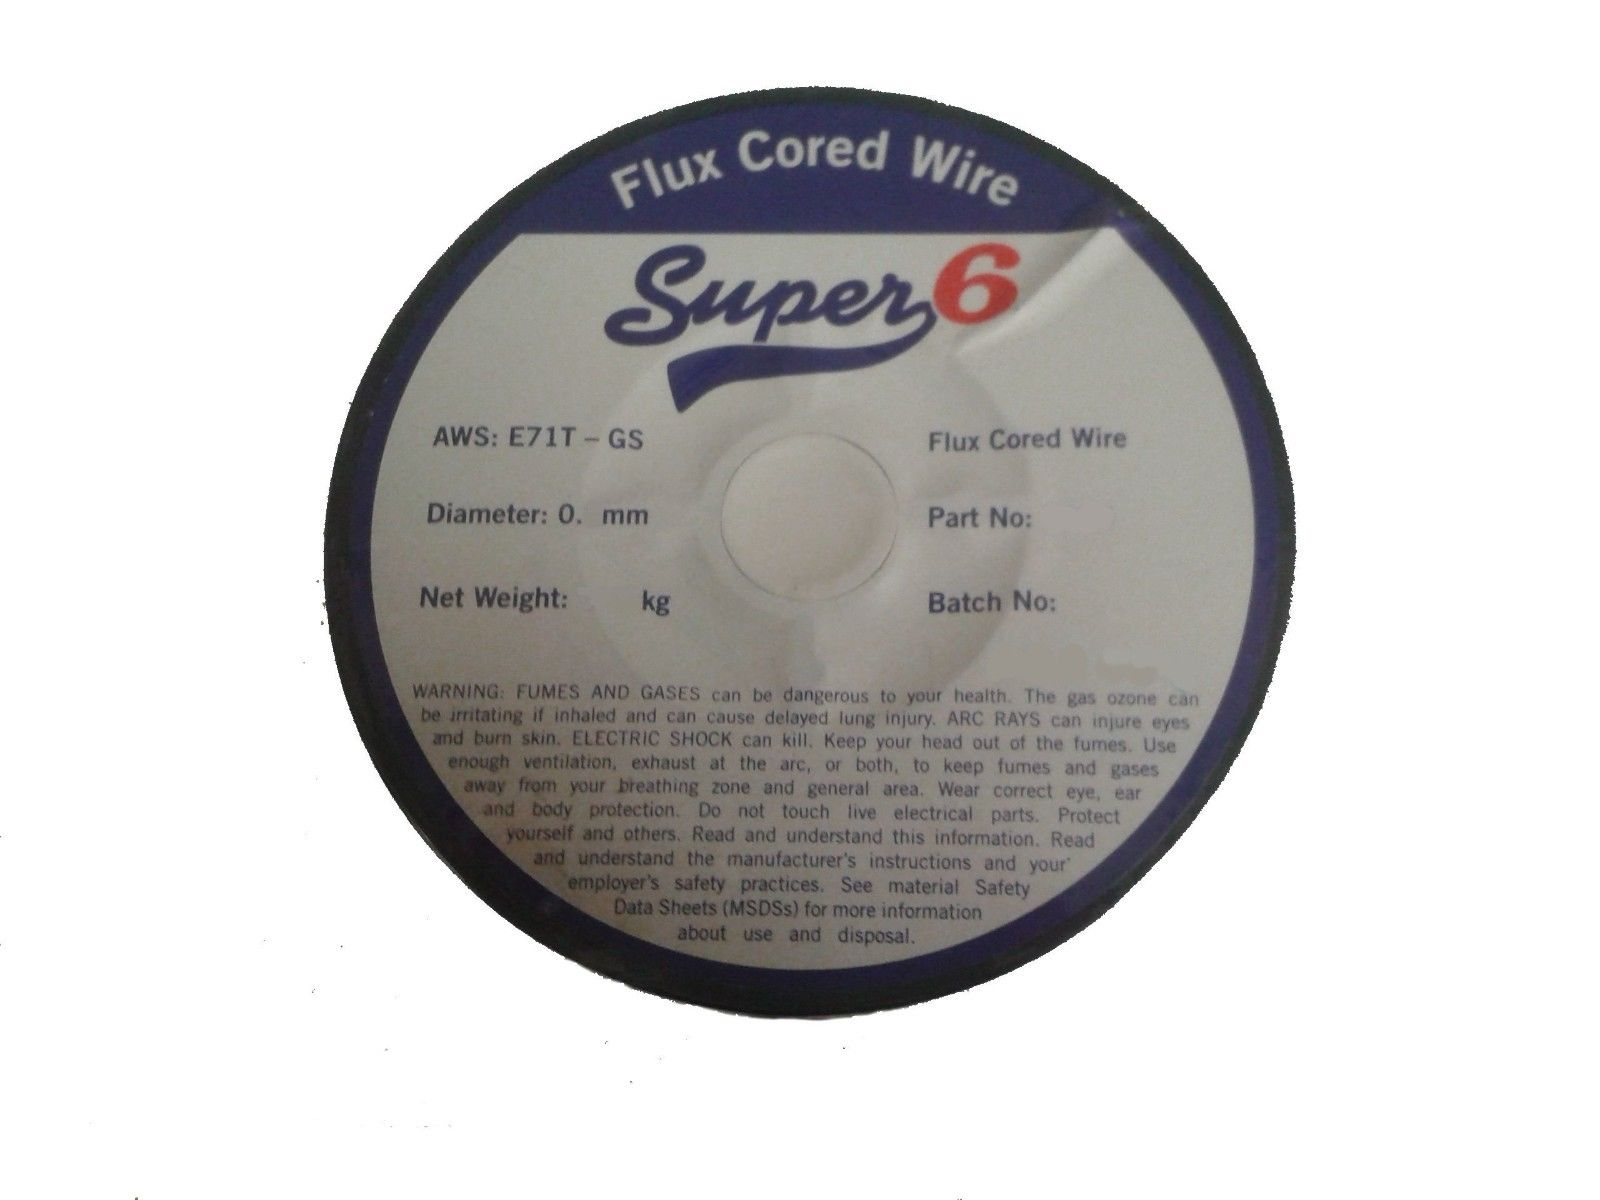 SWP SUPER 6 7339 0.9MM FLUX CORED GASLESS MIG WELDING WIRE 4.5KG ...